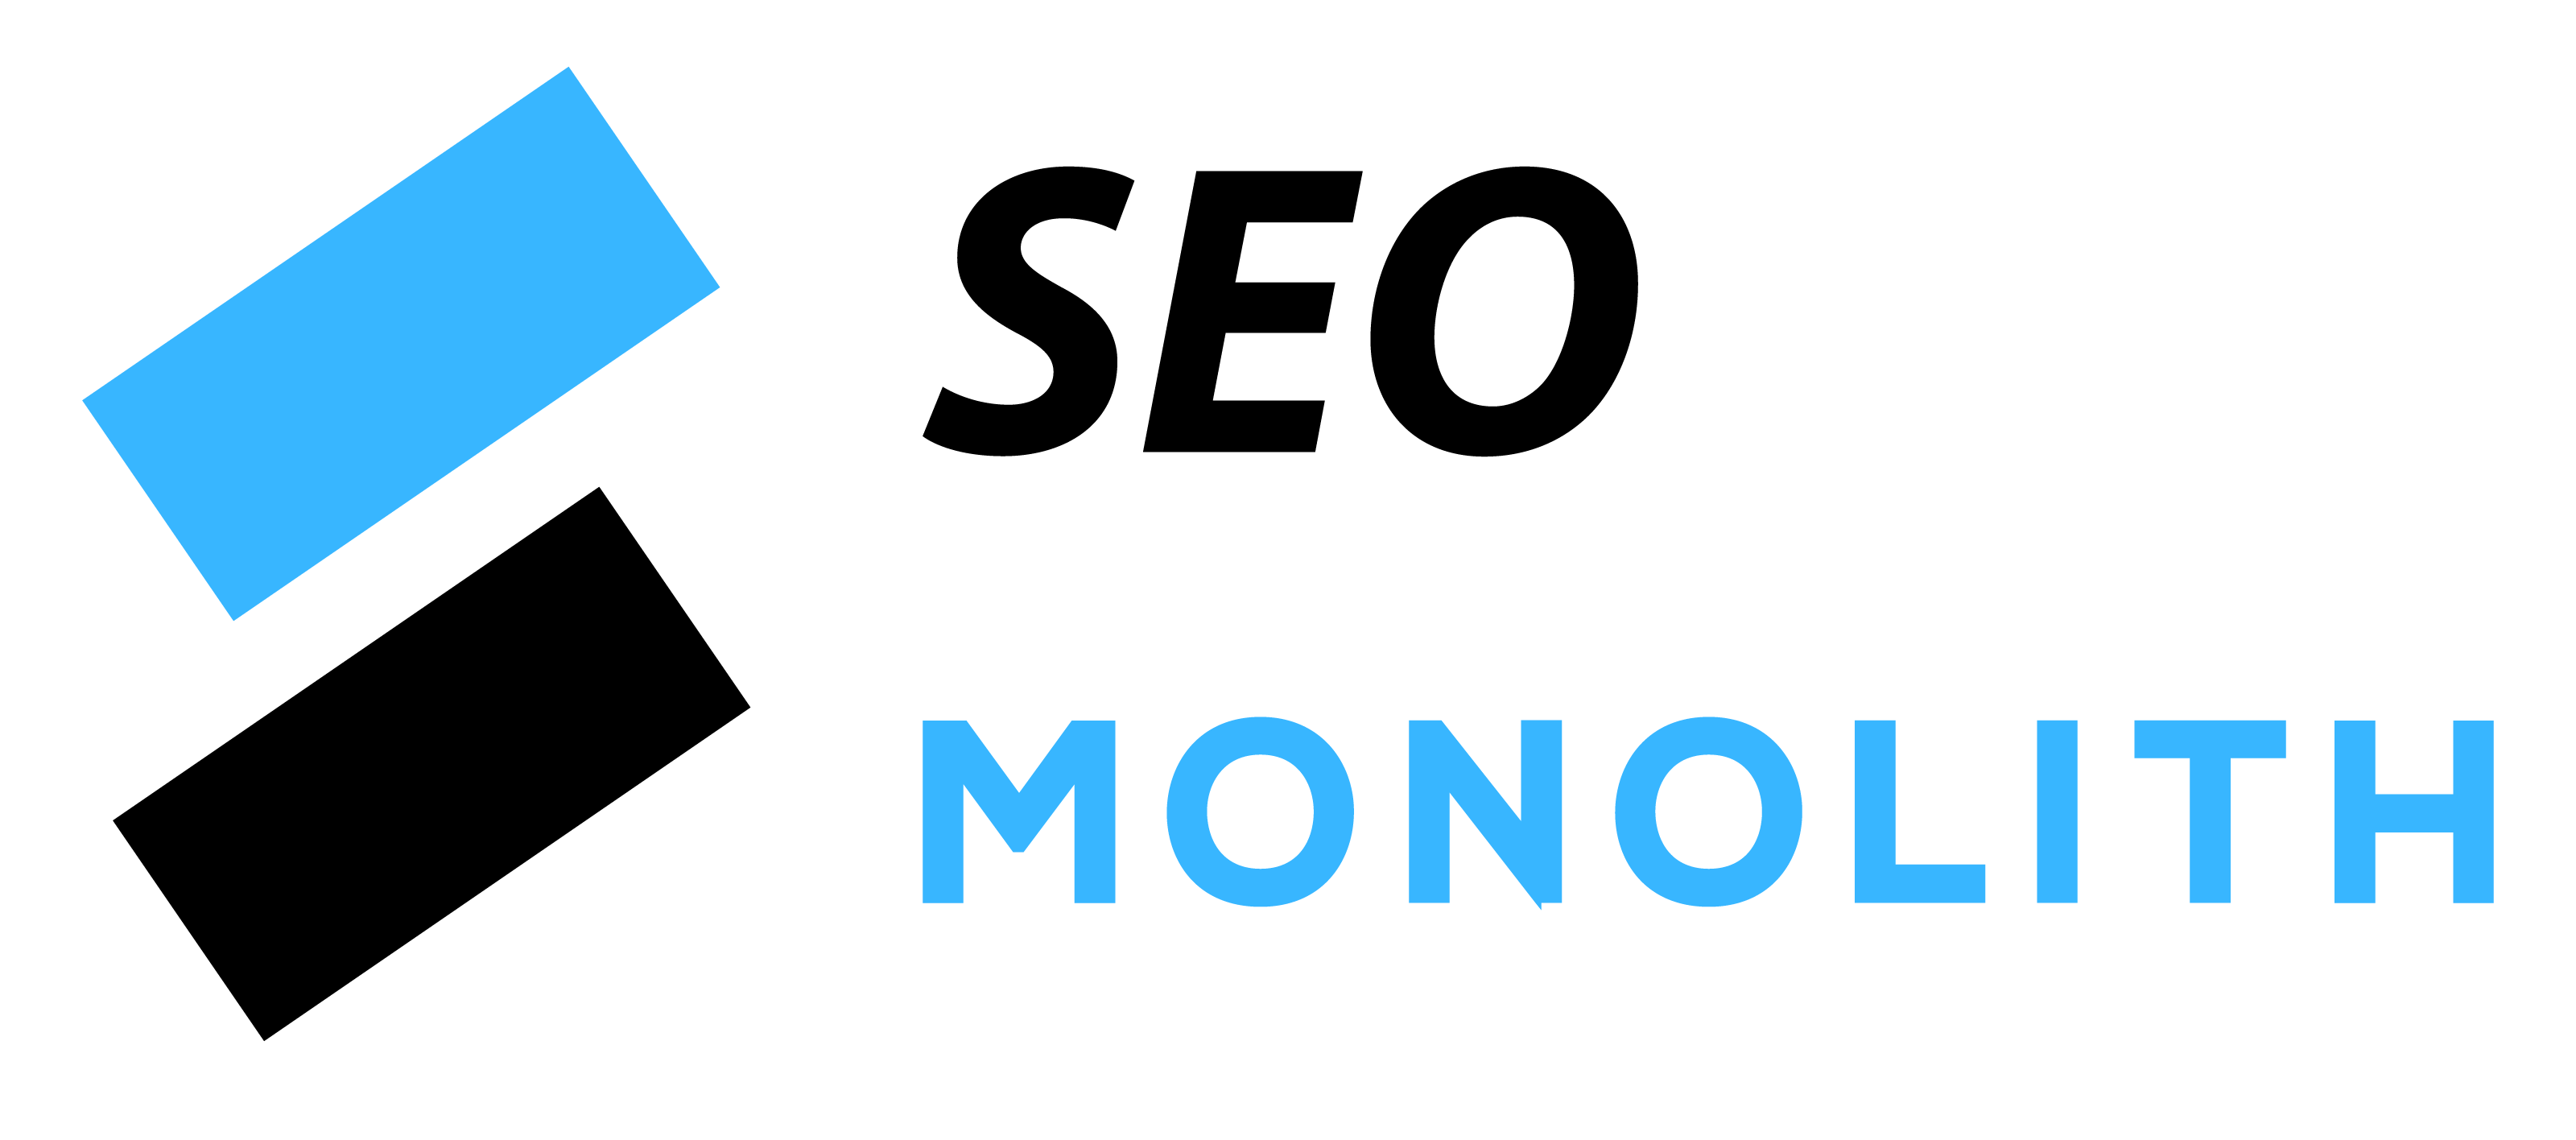 SEO Monolith, A Groundbreaking Digital Marketing Agency for The Flooring Industry.